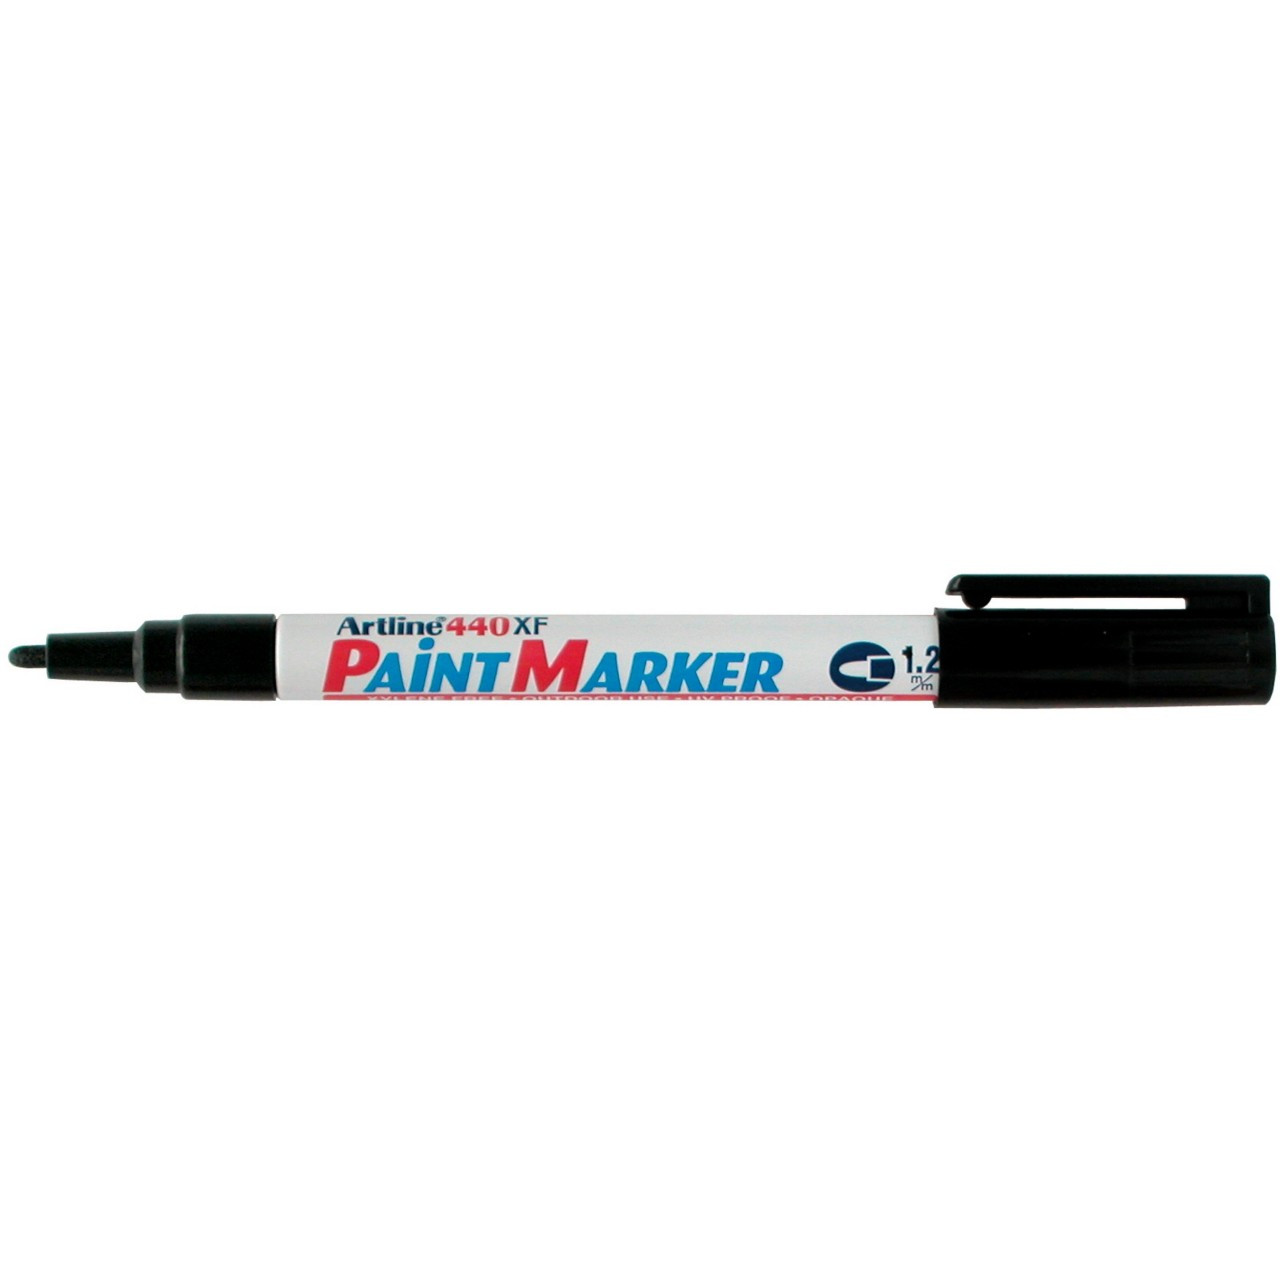 Artline 440 Paint Marker Black 1.2Mm Bullet Nib